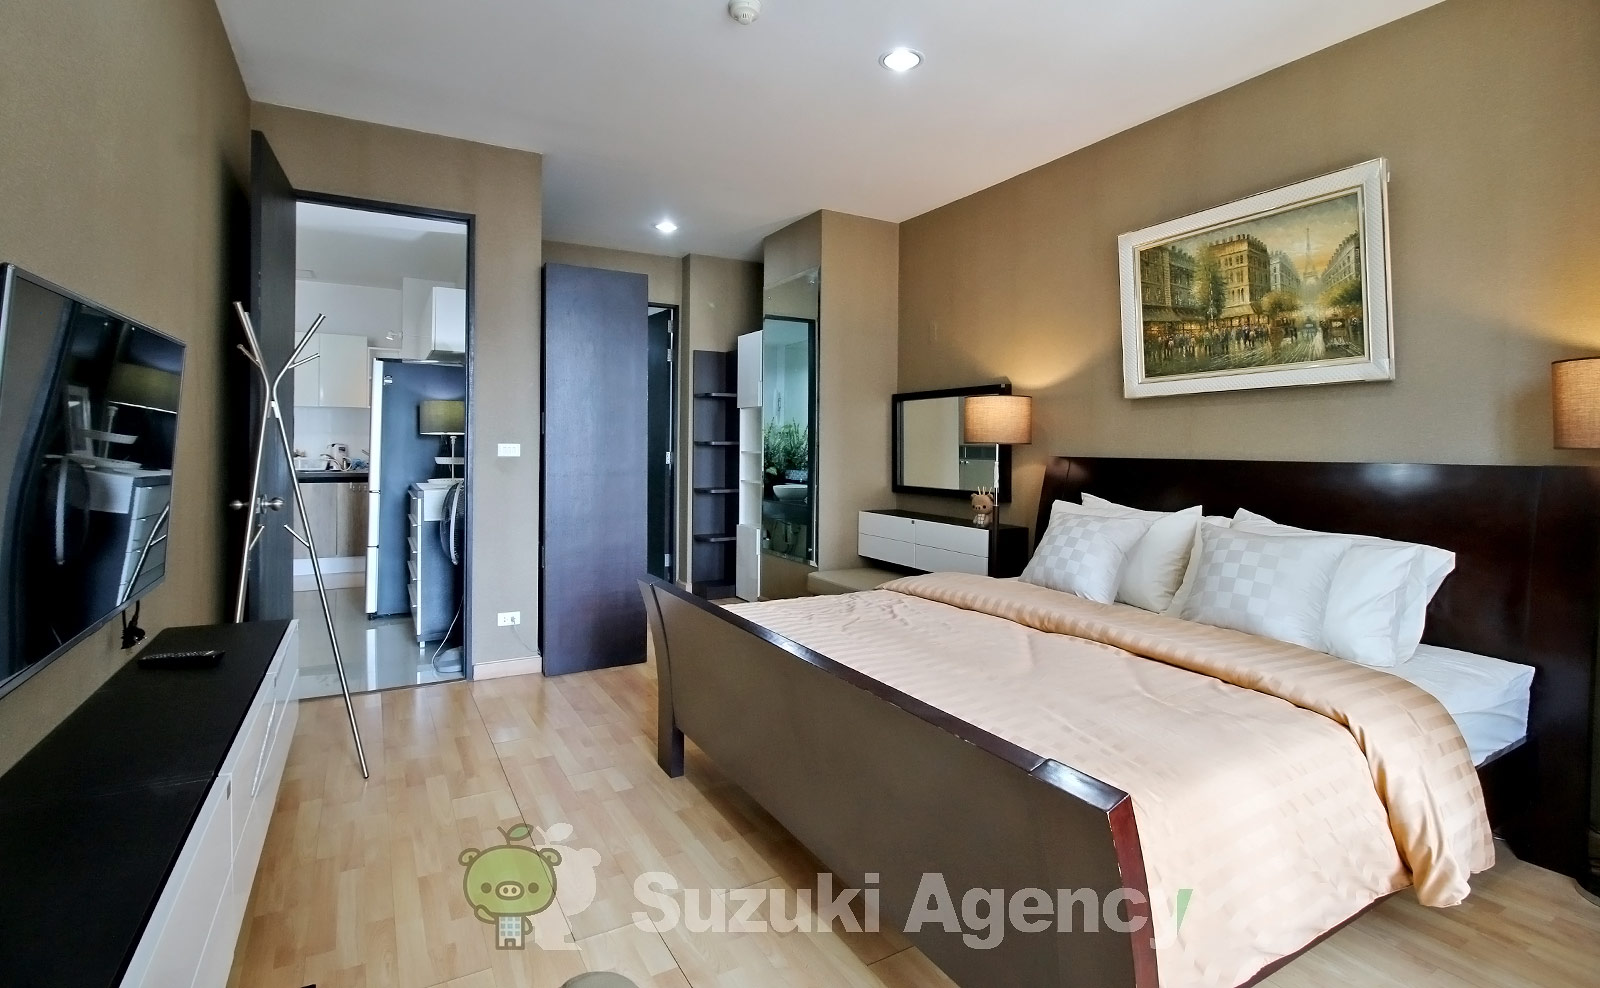 Citi Smart Condo:2Bed Room Photos No.8